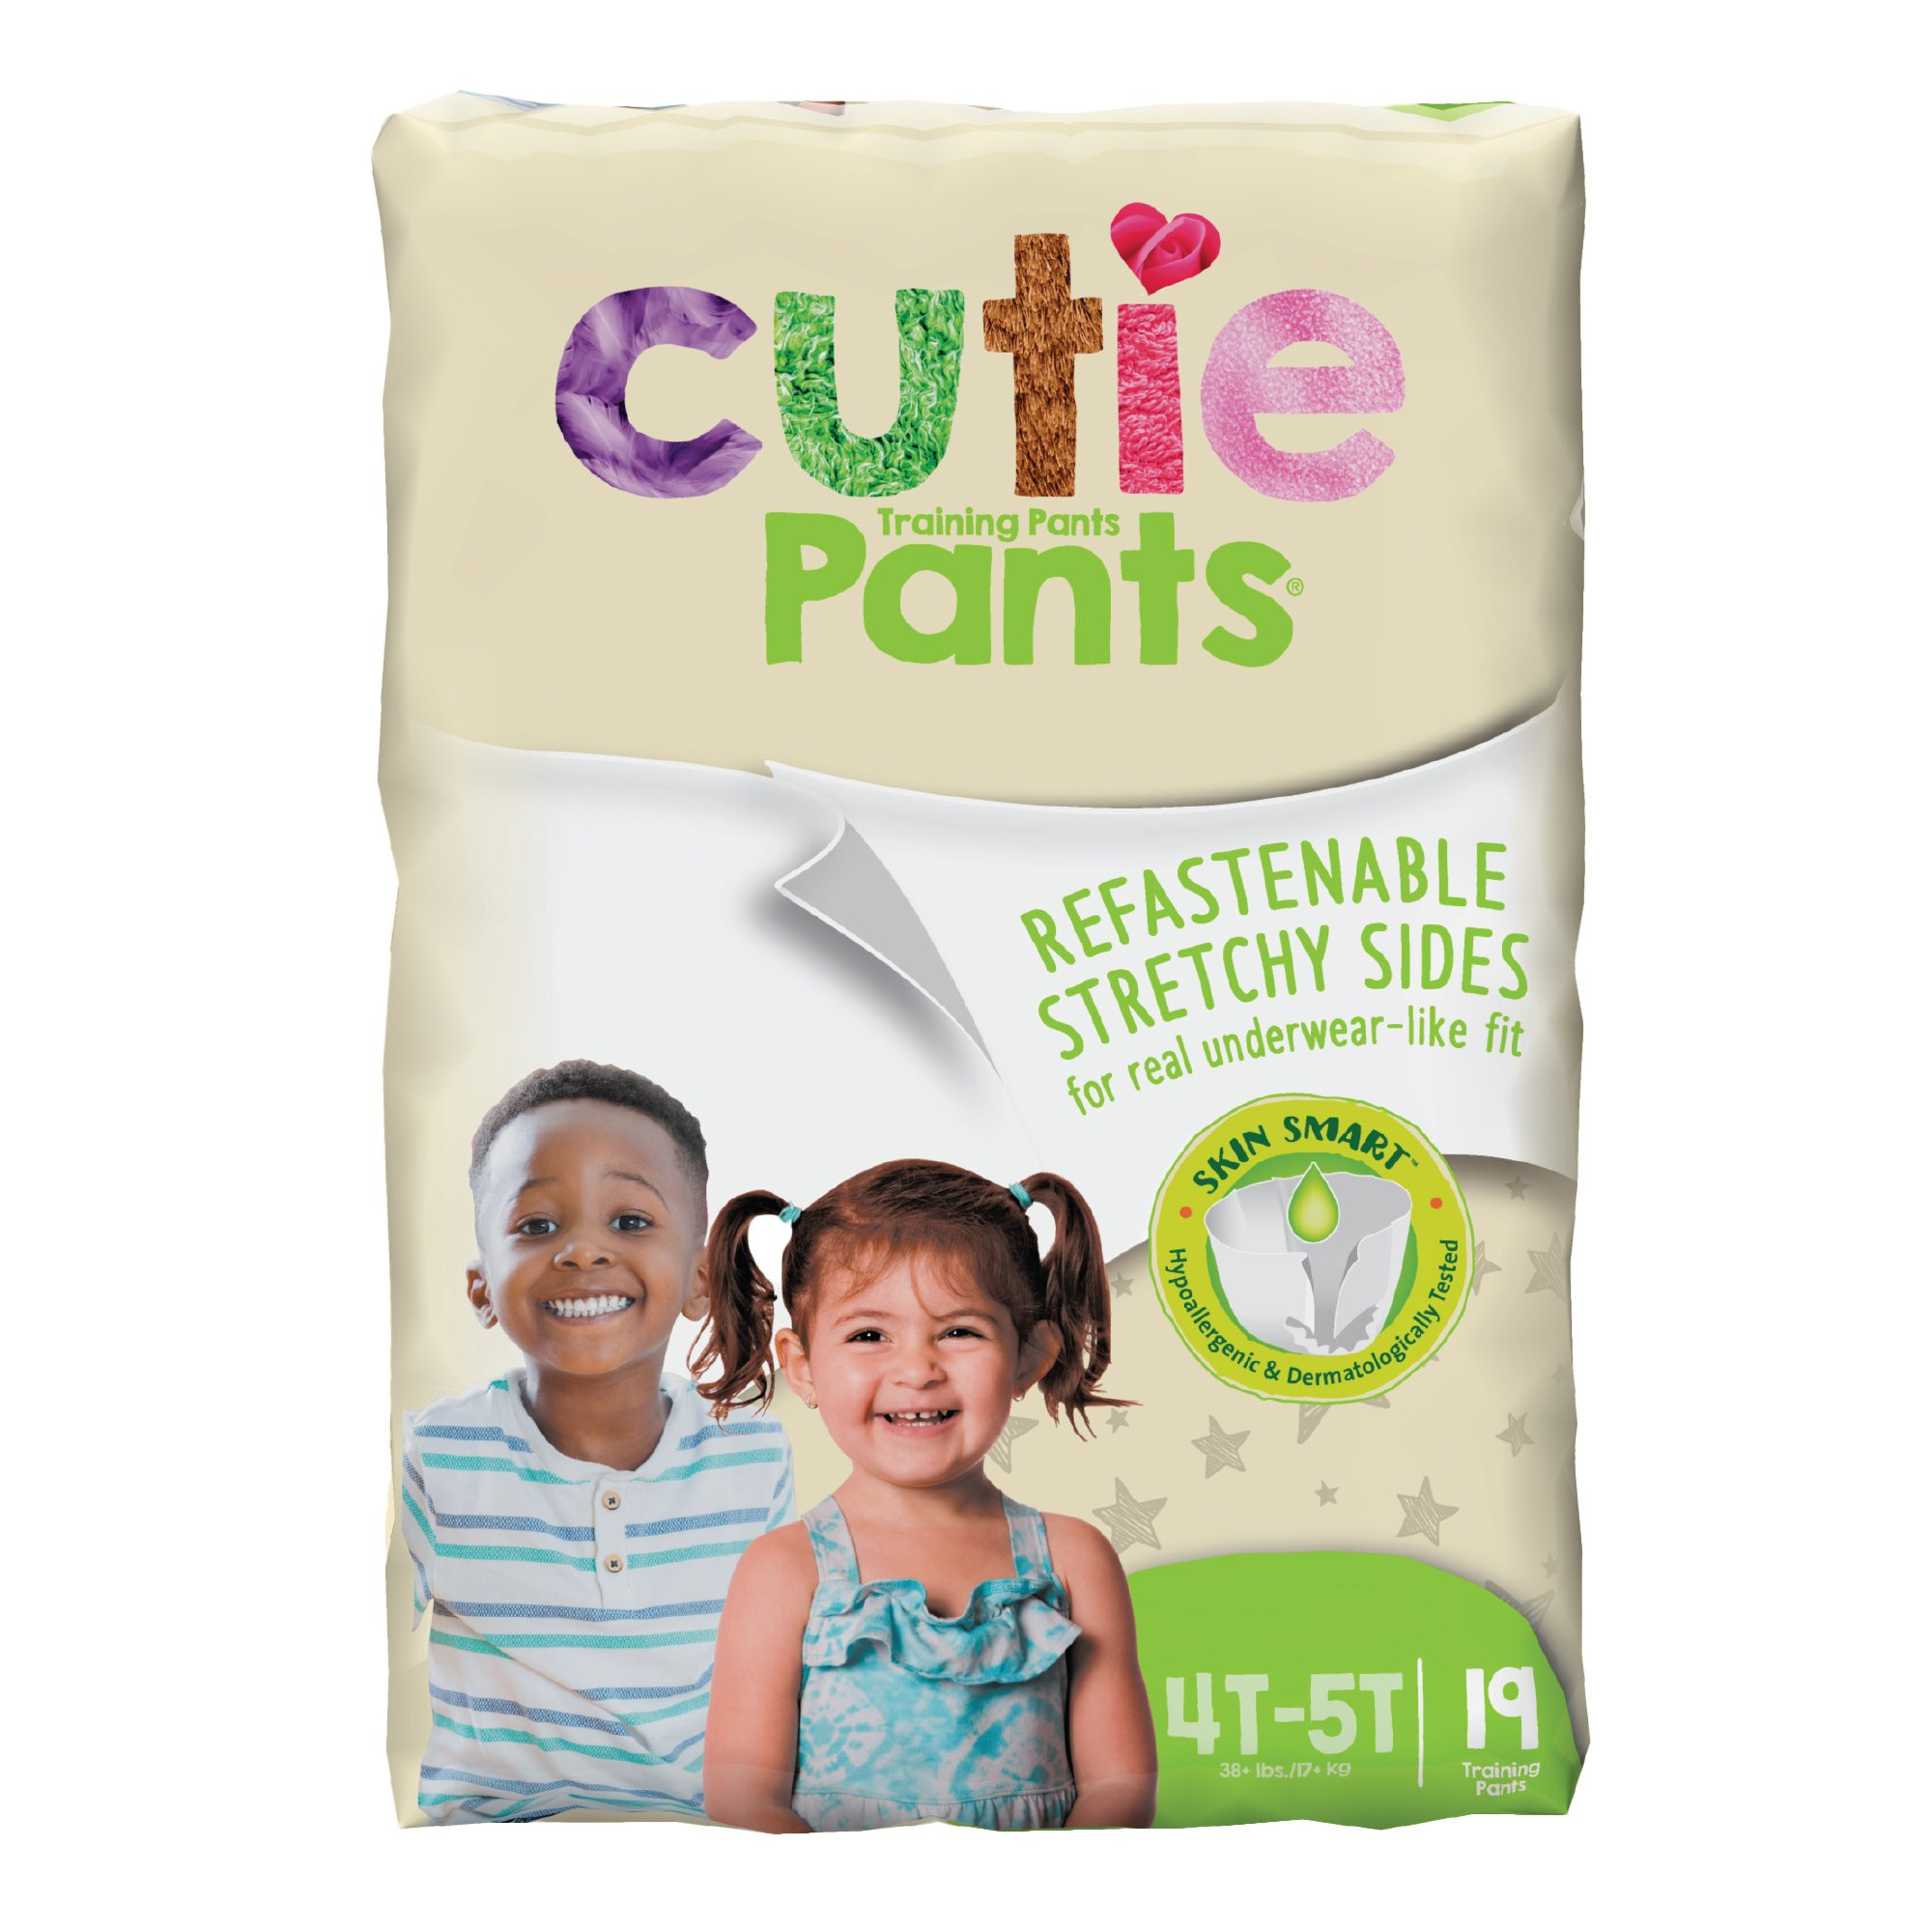 Cutie Pants Toddler Disposable Training Pants Pull ups, Heavy, WP9001/1, Size 4T-5T Over 35 lbs - Pack of 19